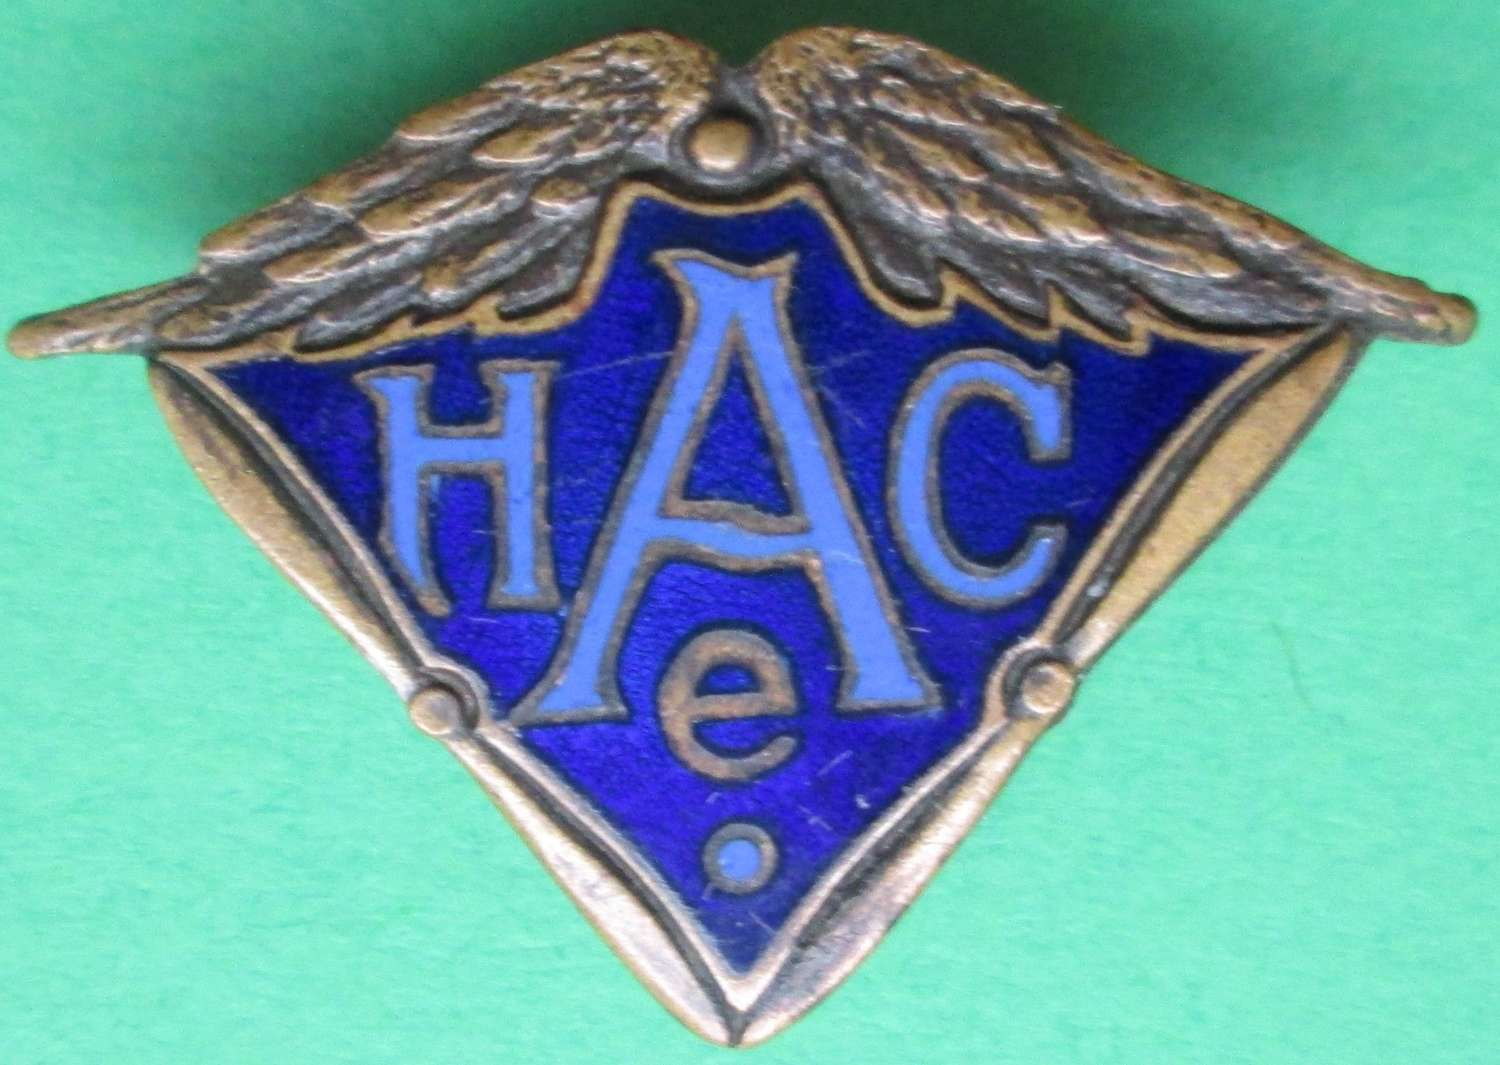 A WWI PERIOD AIRCRAFT MAKERS BADGE H A C E LAPEL FITTING